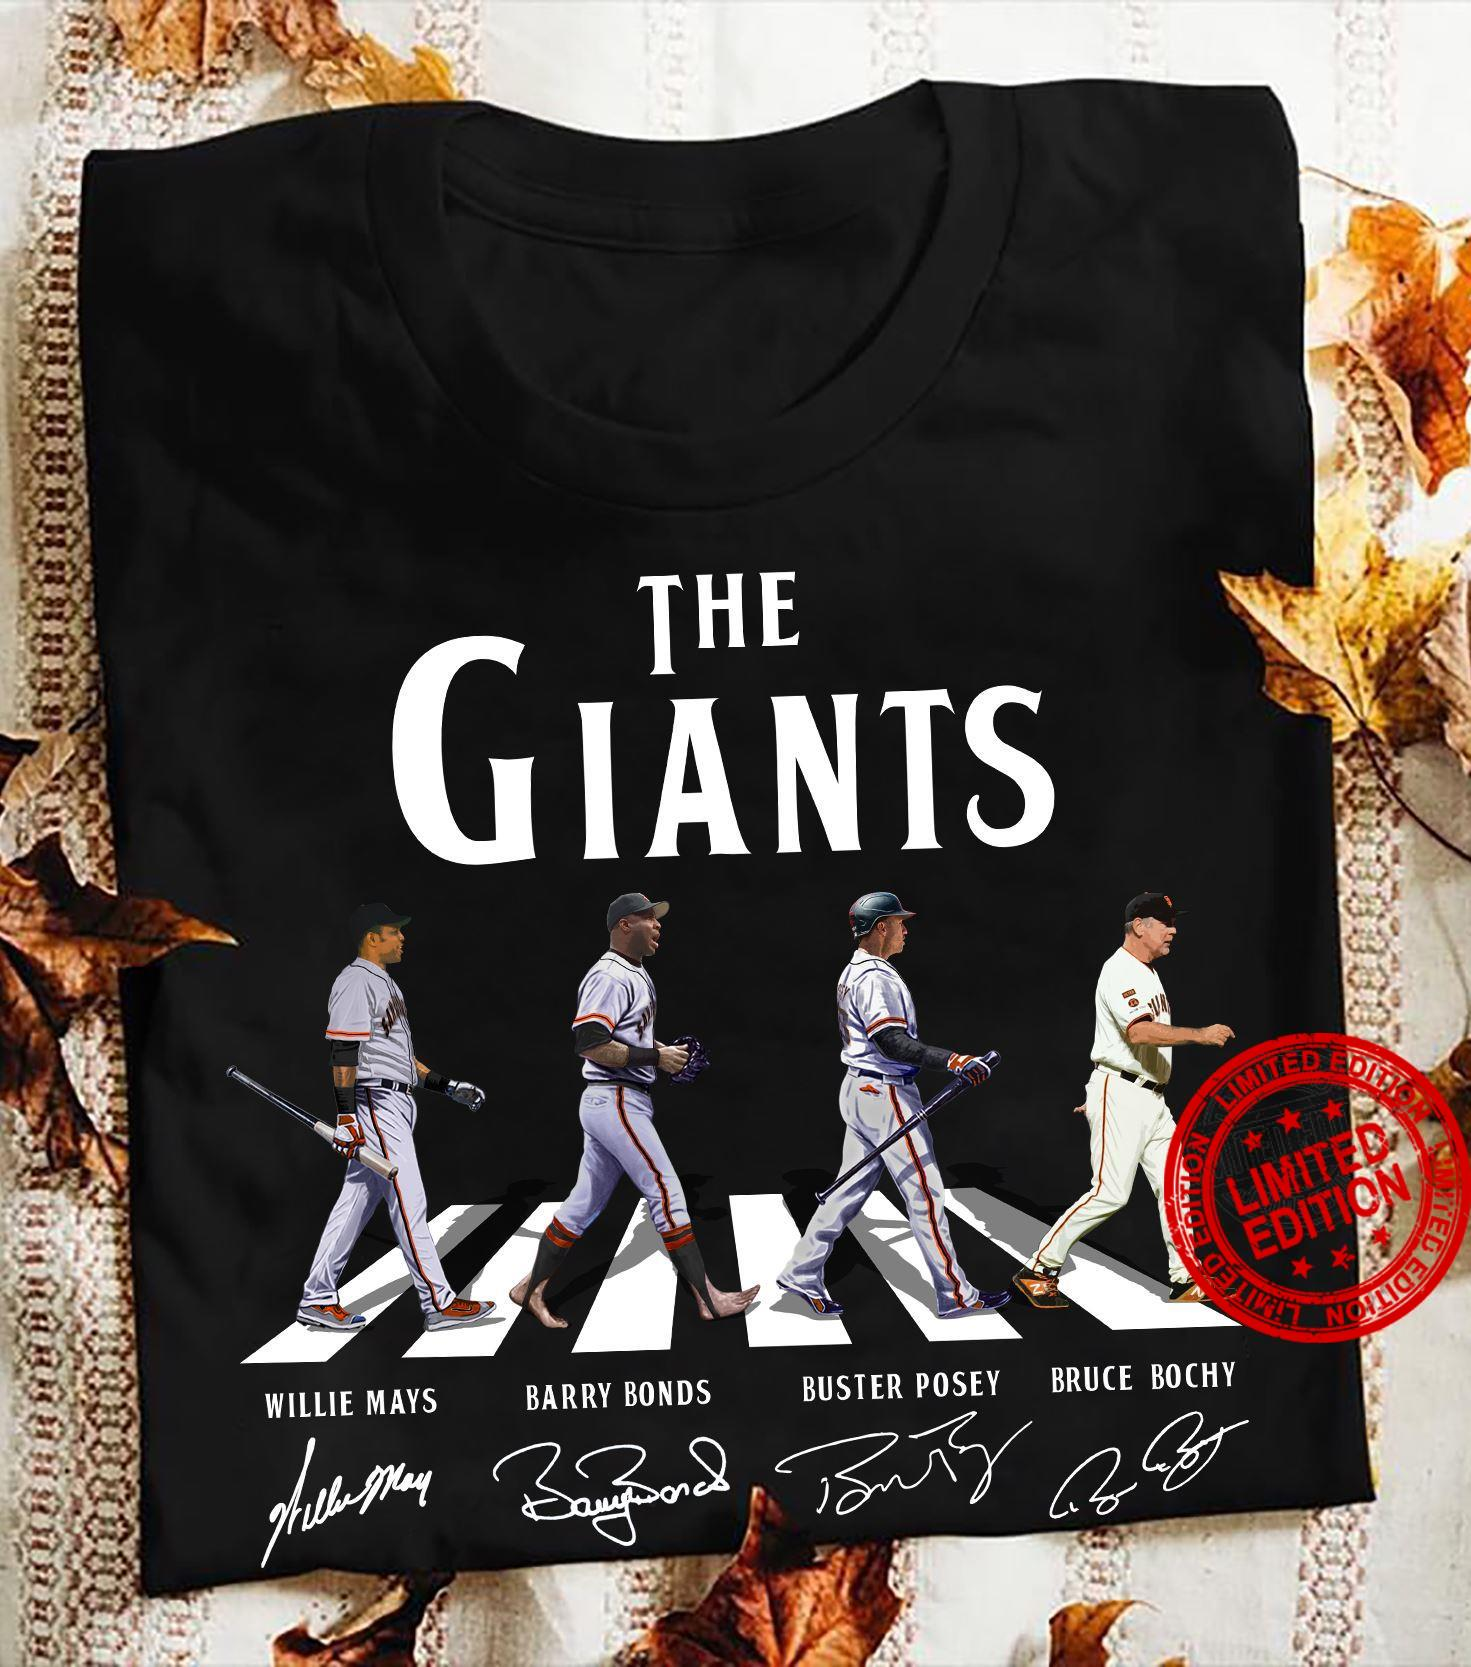 The Giants Willie Mays Barry Bonds Buster Posey Bruce Bochy Shirt